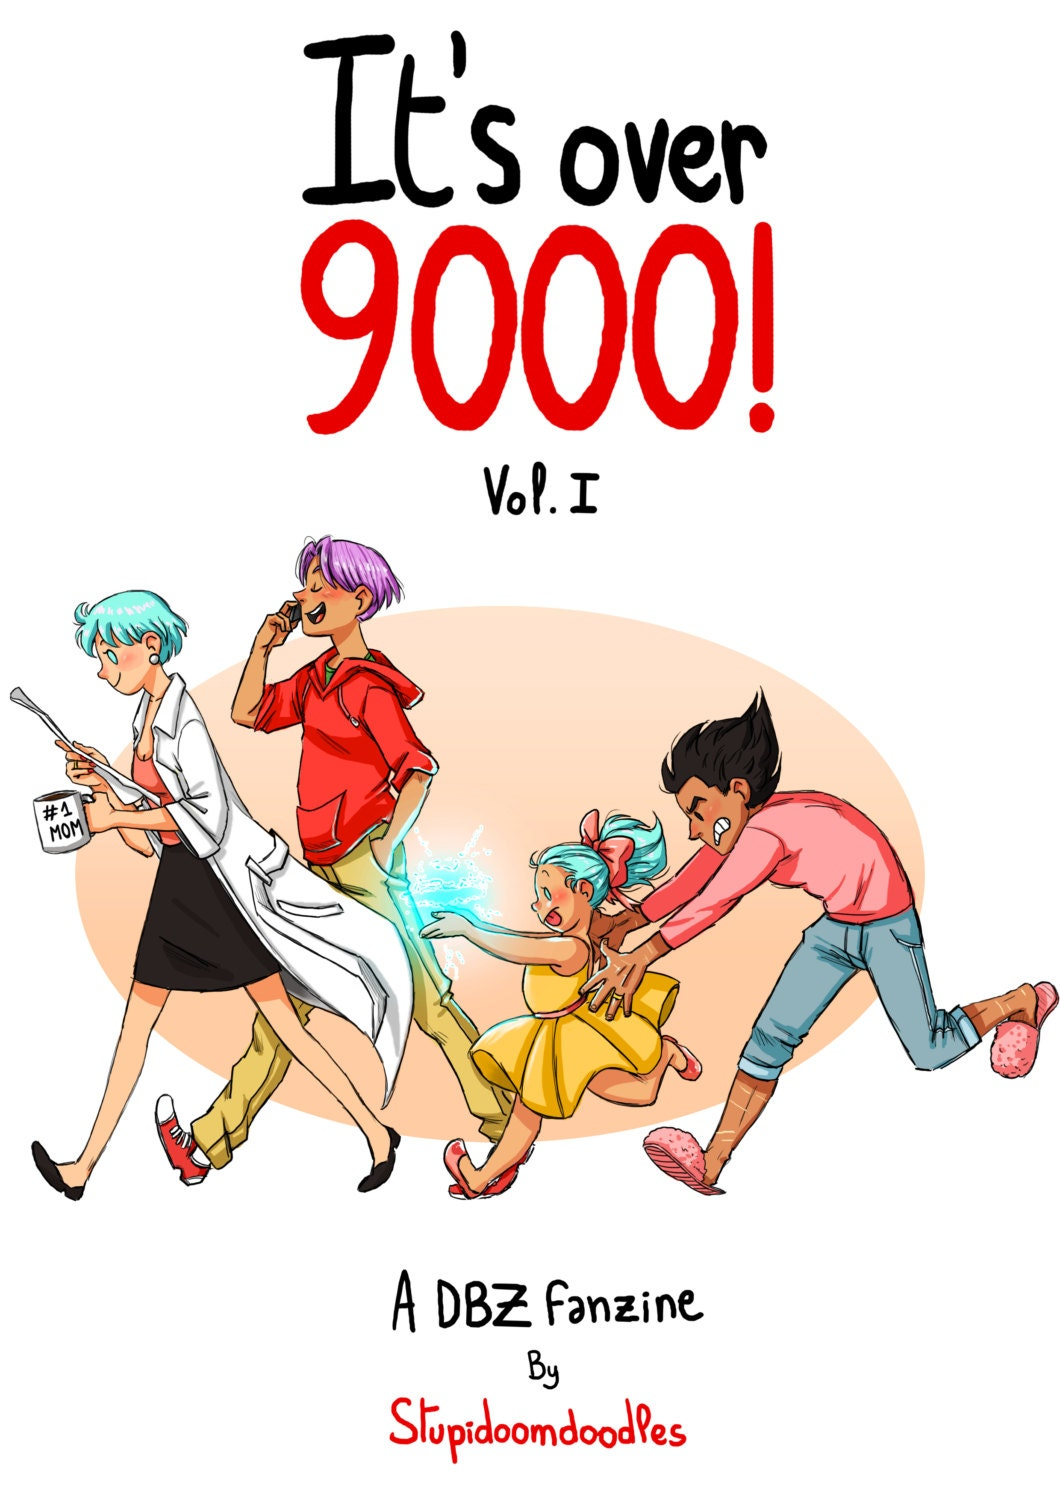 its over 9000 Looking for the perfect over 9000 you can stop your search and come to etsy, the marketplace where sellers around the world express their creativity through handmade and vintage goods.